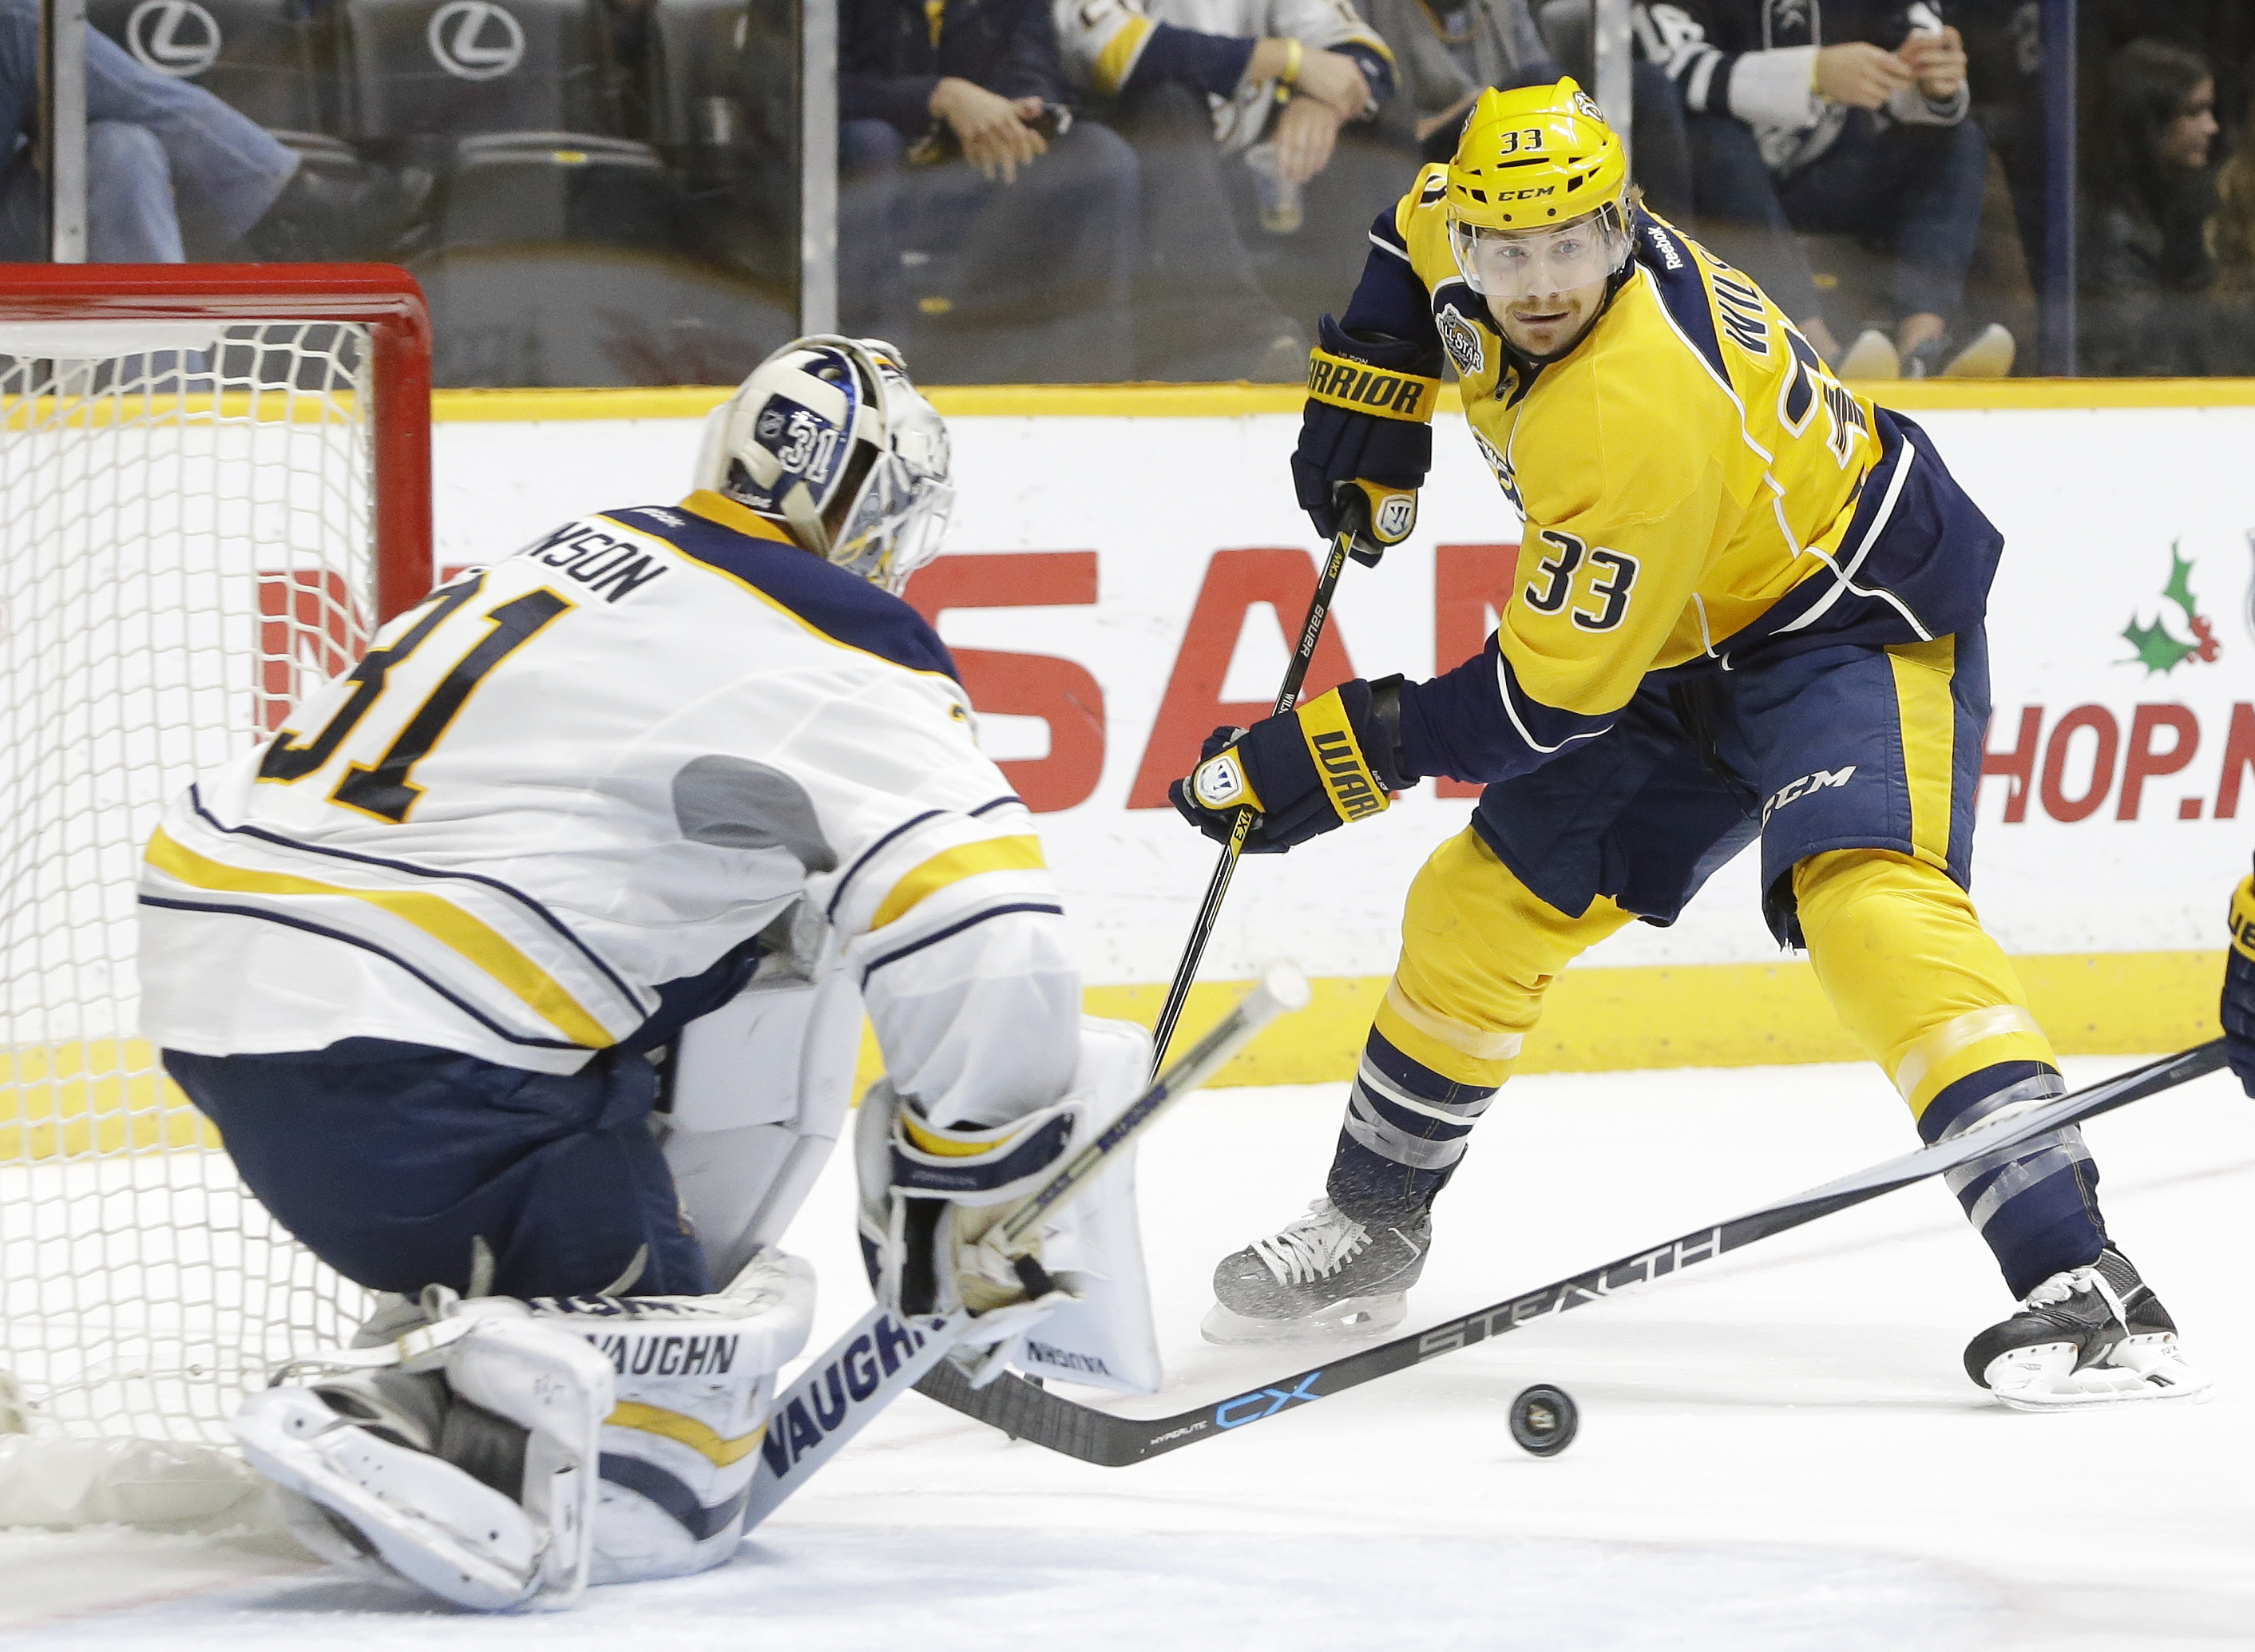 Buffalo Sabres goalie Chad Johnson (31) watches as Nashville Predators center Colin Wilson (33) closes in during the second period of an NHL hockey game Saturday, Nov. 28, 2015, in Nashville, Tenn. (AP Photo/Mark Humphrey)